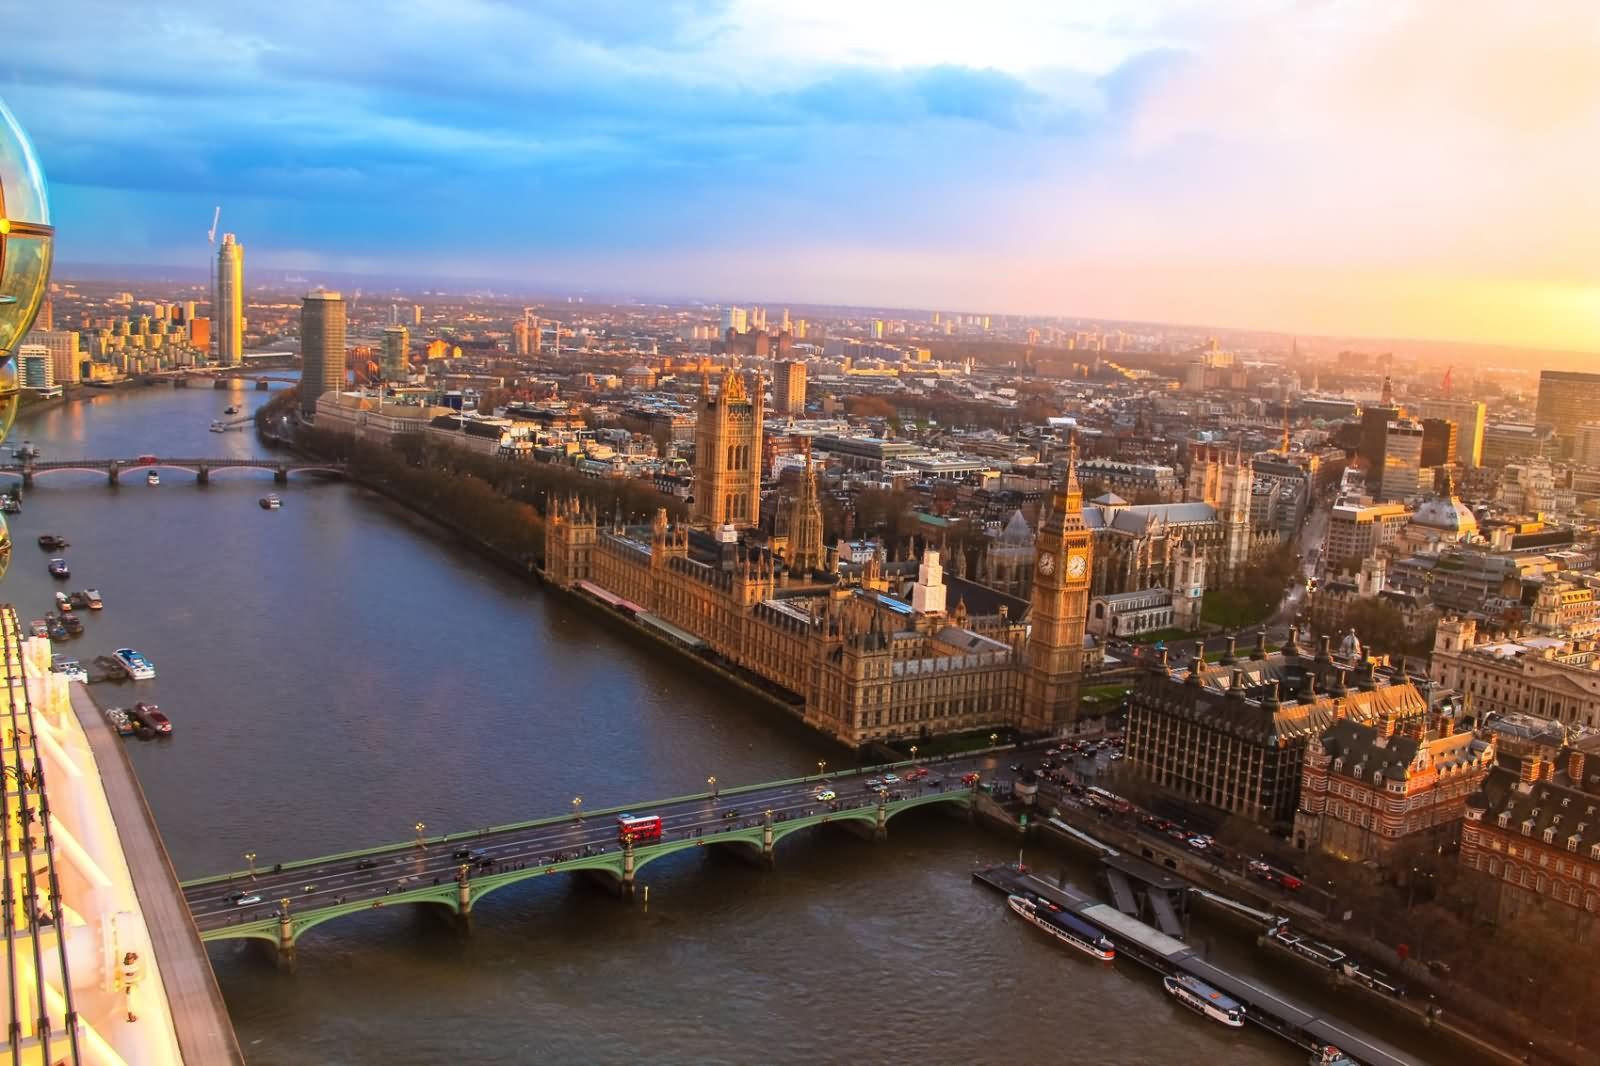 30 Very Beautiful London Eye Inside Pictures And Photos Images, Photos, Reviews